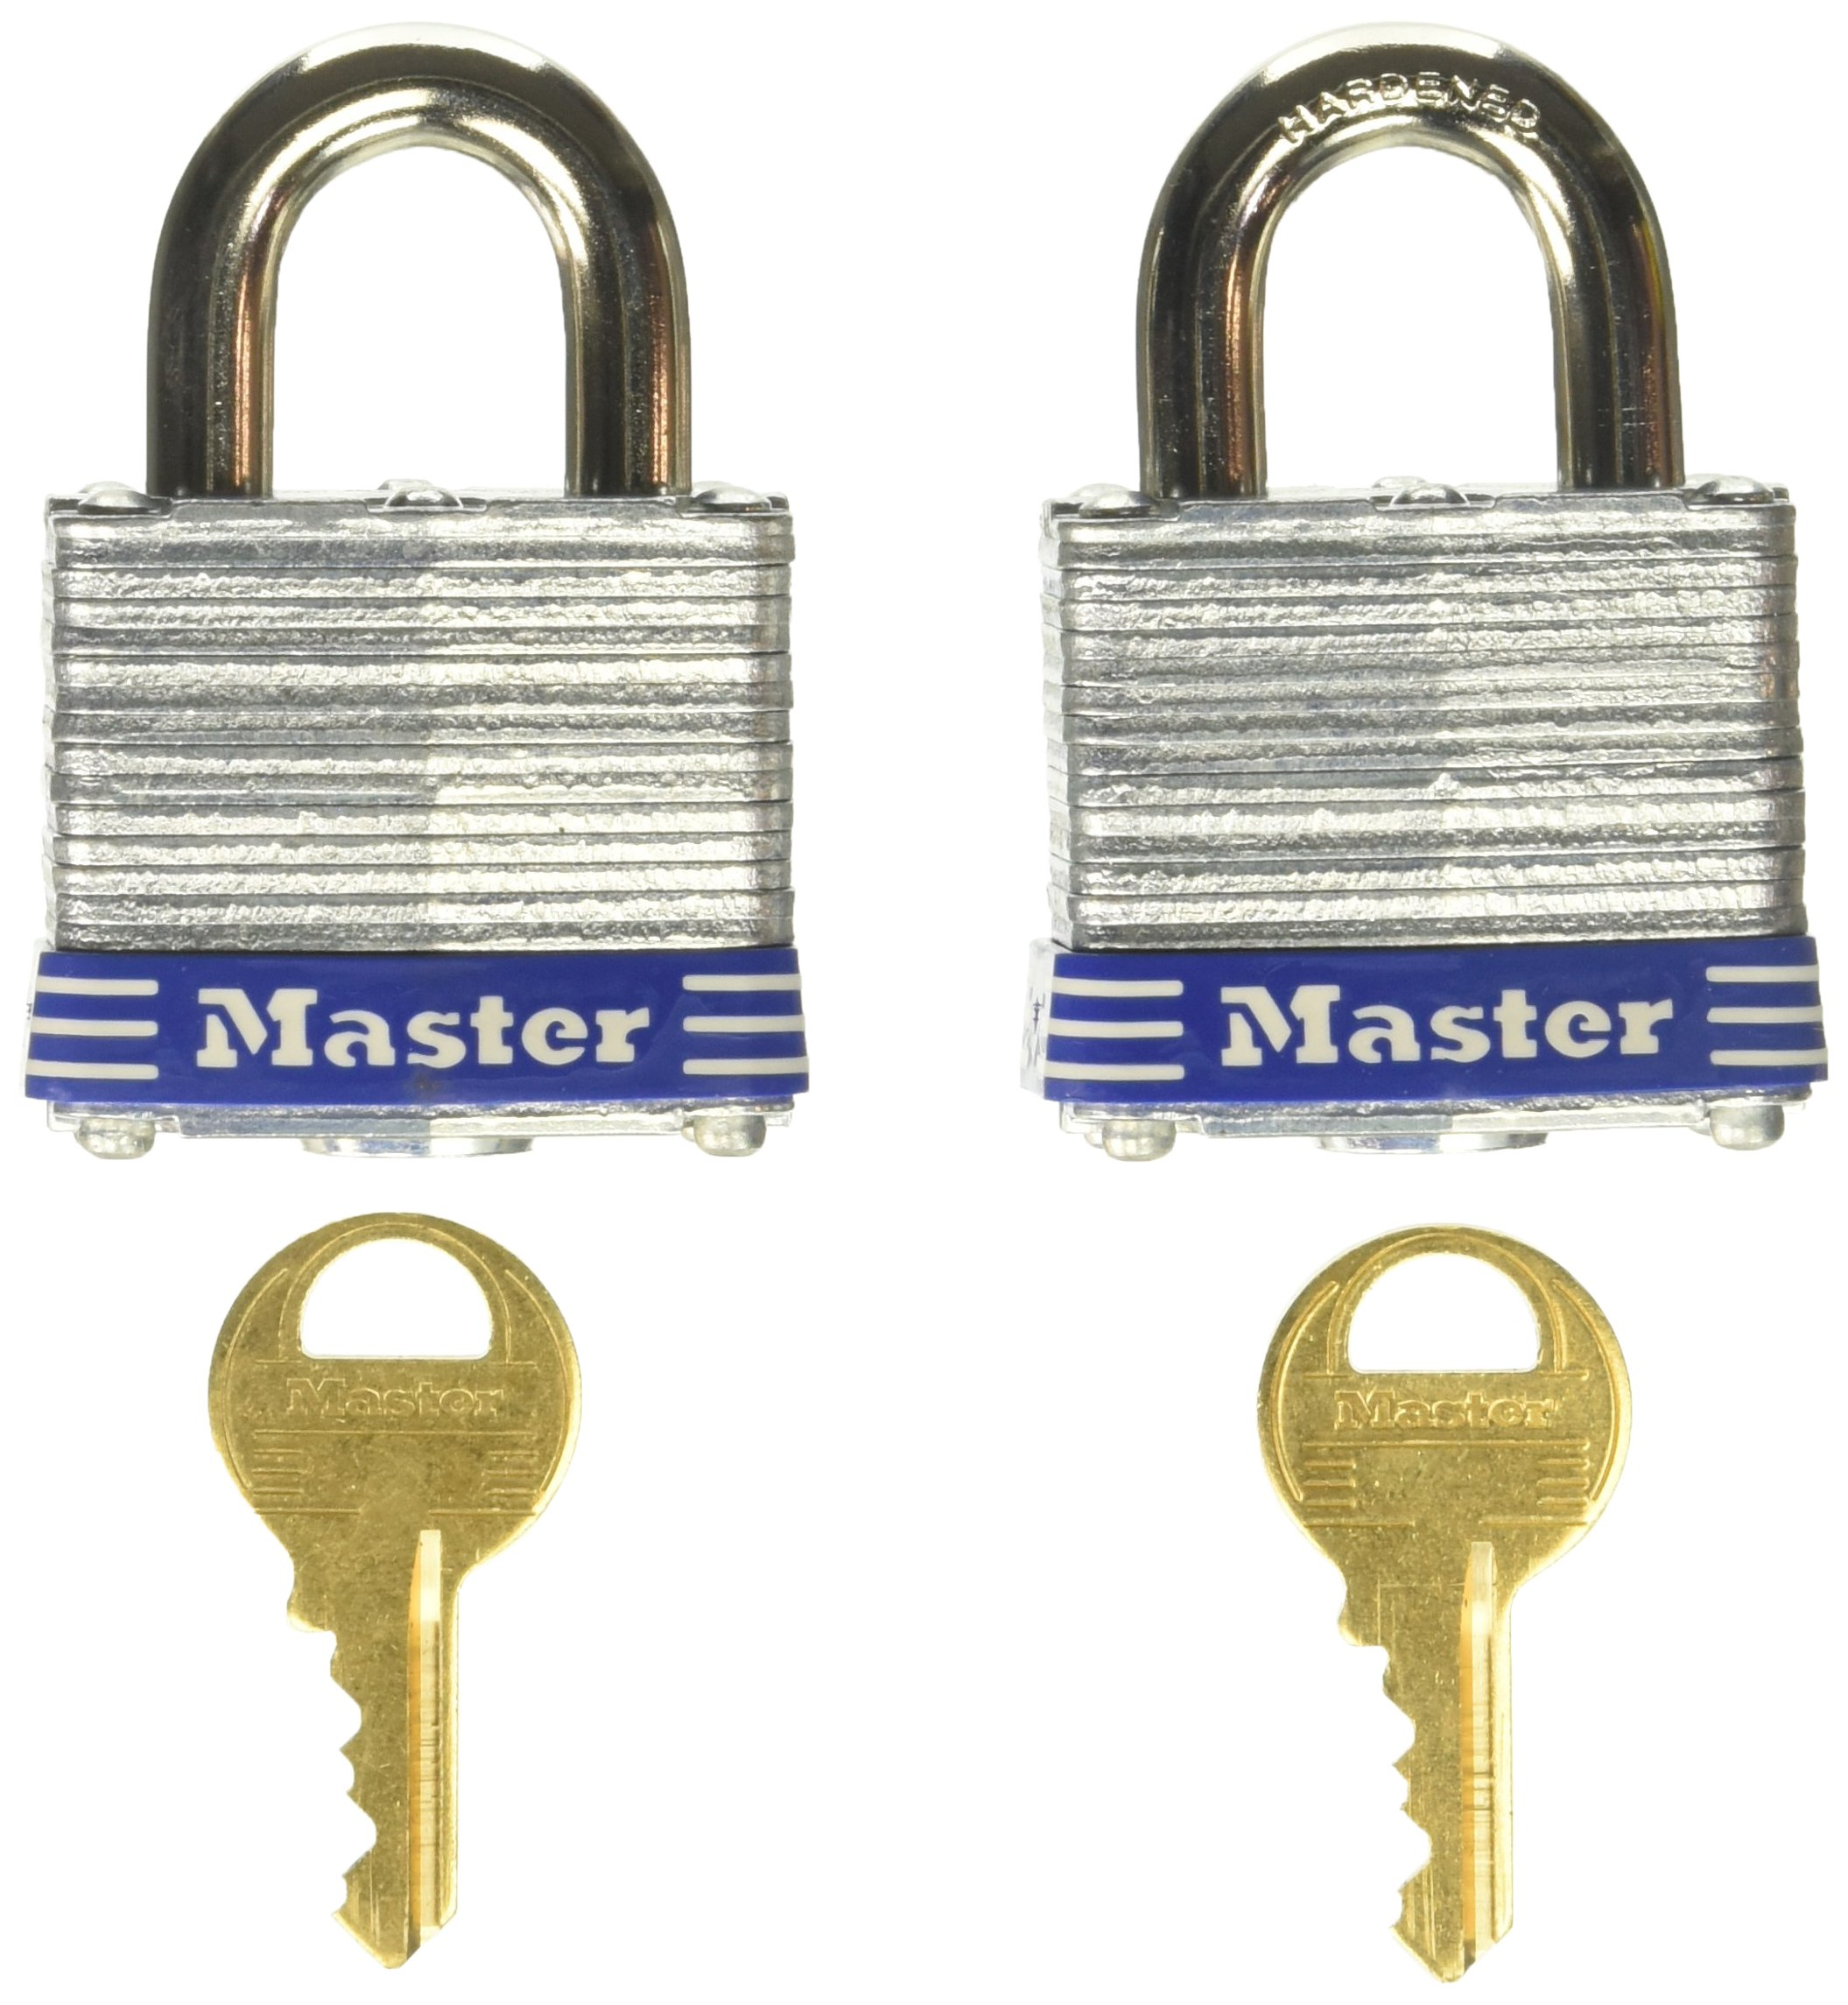 Master Lock 3T 1-9/16-Inch Wide Keyed-Alike Padlock, 9/32-Inch Shackle, 2-Pack by Master Lock (Image #1)